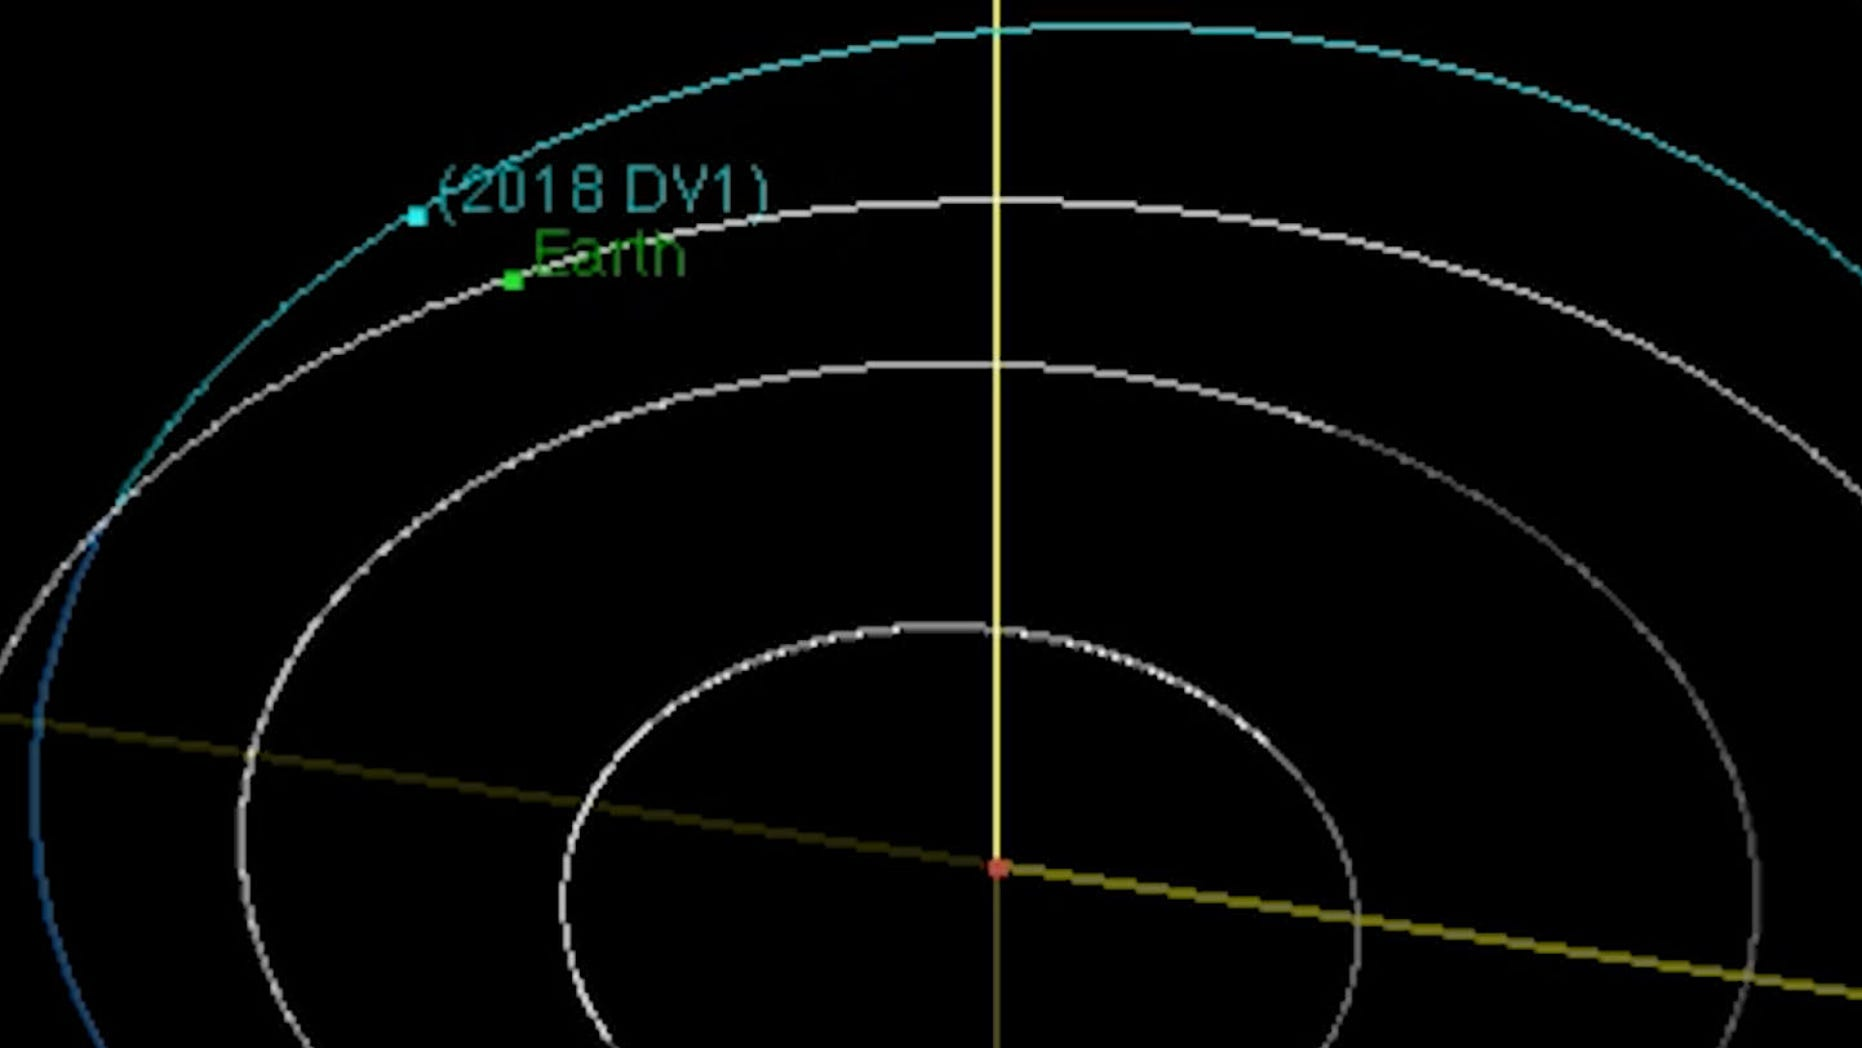 This NASA graphic shows the orbit of asteroid 2018 DV1 in relation to Earth. The asteroid will fly within 70,000 miles (113,000 kilometers) of Earth on March 2, 2018.